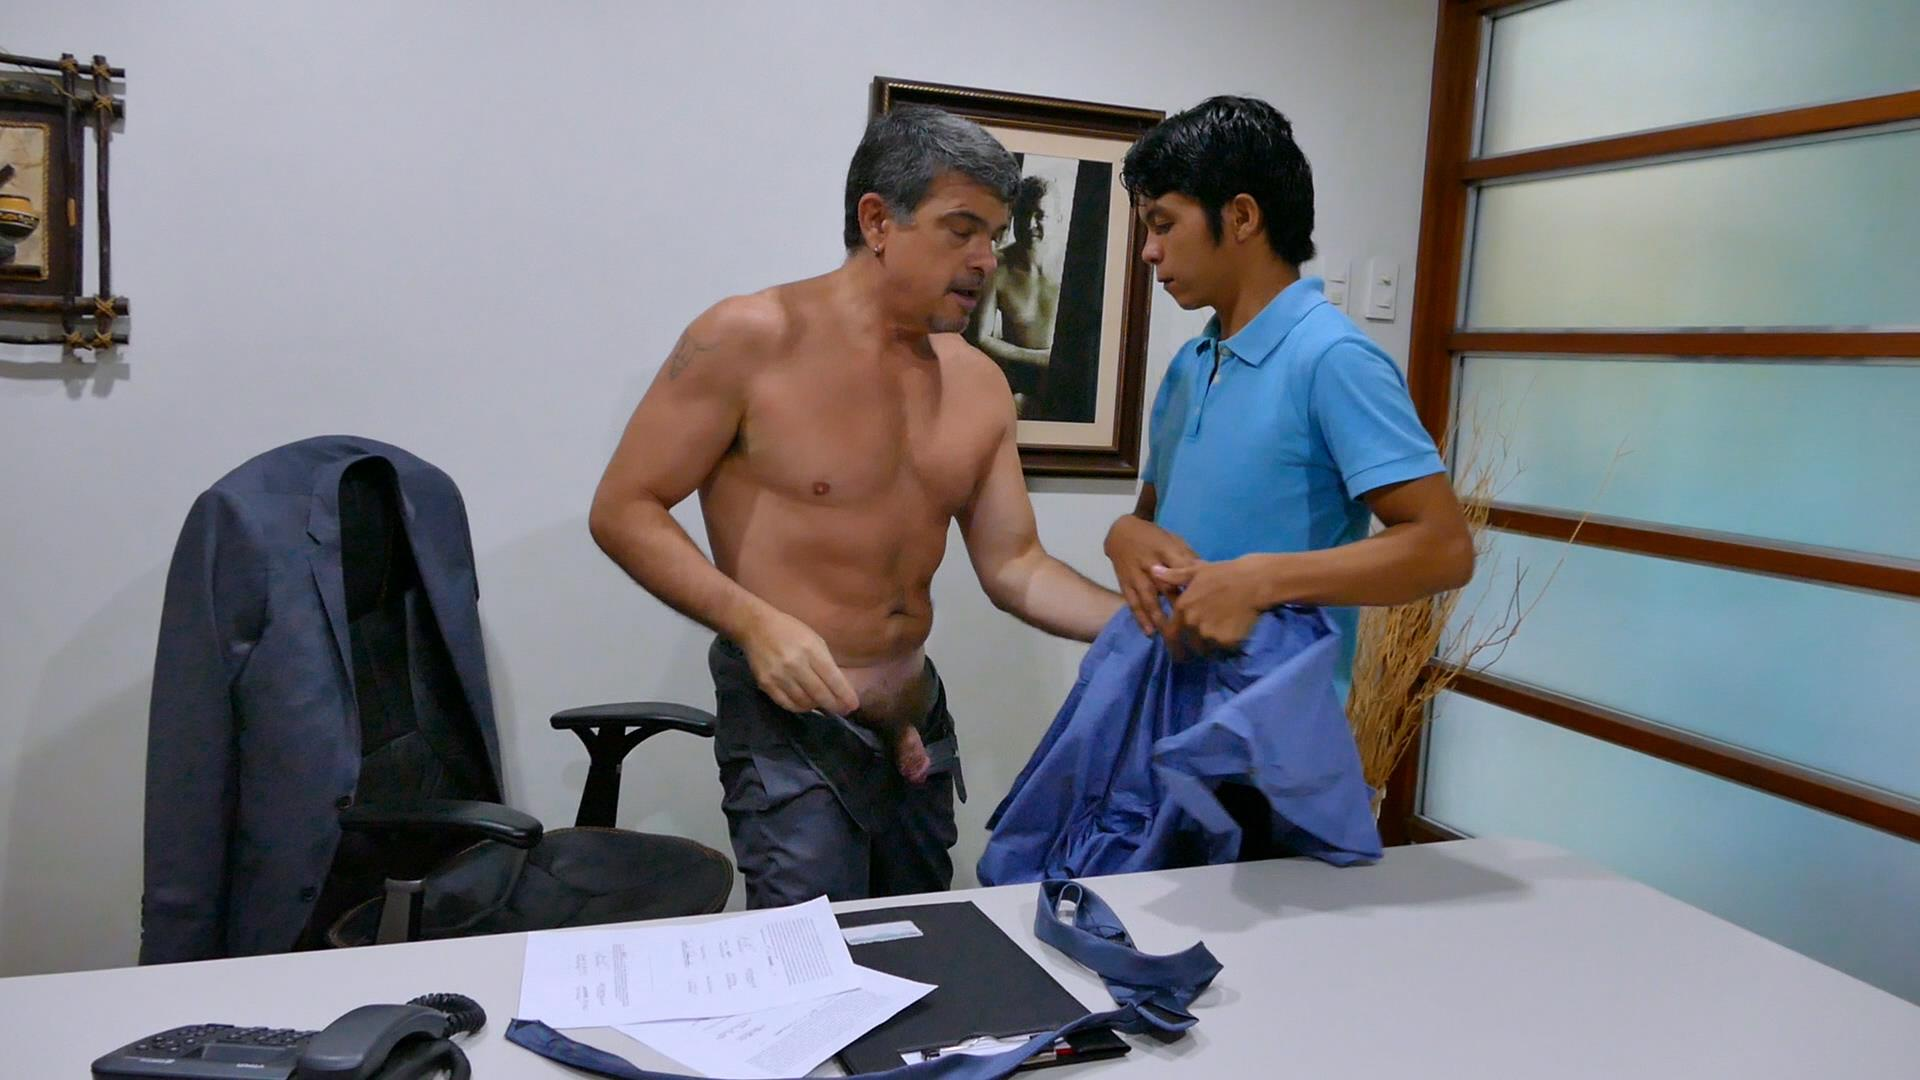 Daddys-Asians-Asian-Twink-Gets-Barebacked-By-Daddy-06 Daddy Breeds An Asian Boy Ass During A Job Interview